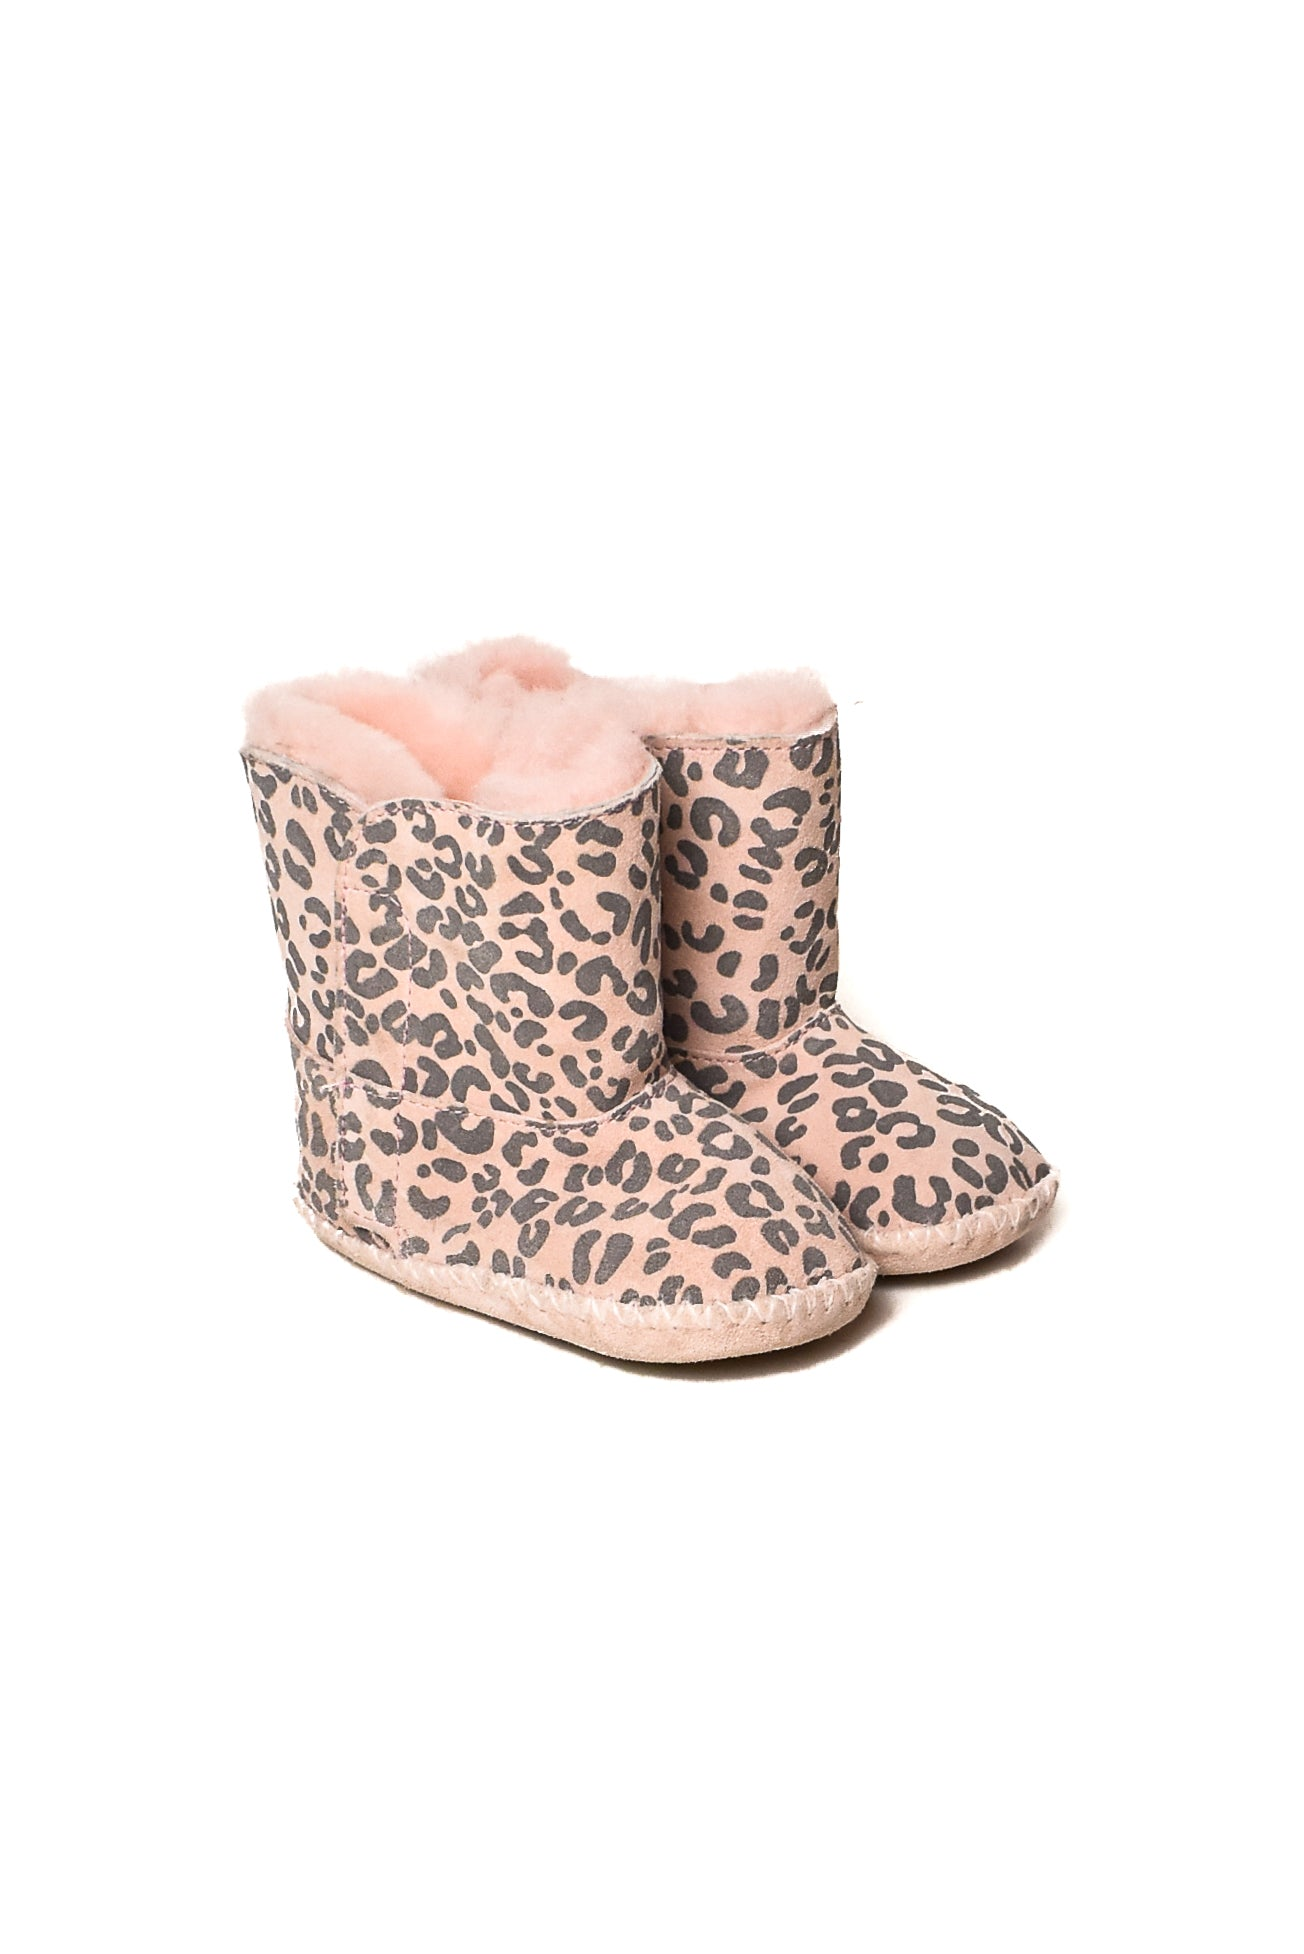 10008413 UGG Baby ~ Boots 12-18M (EU 20.5) at Retykle